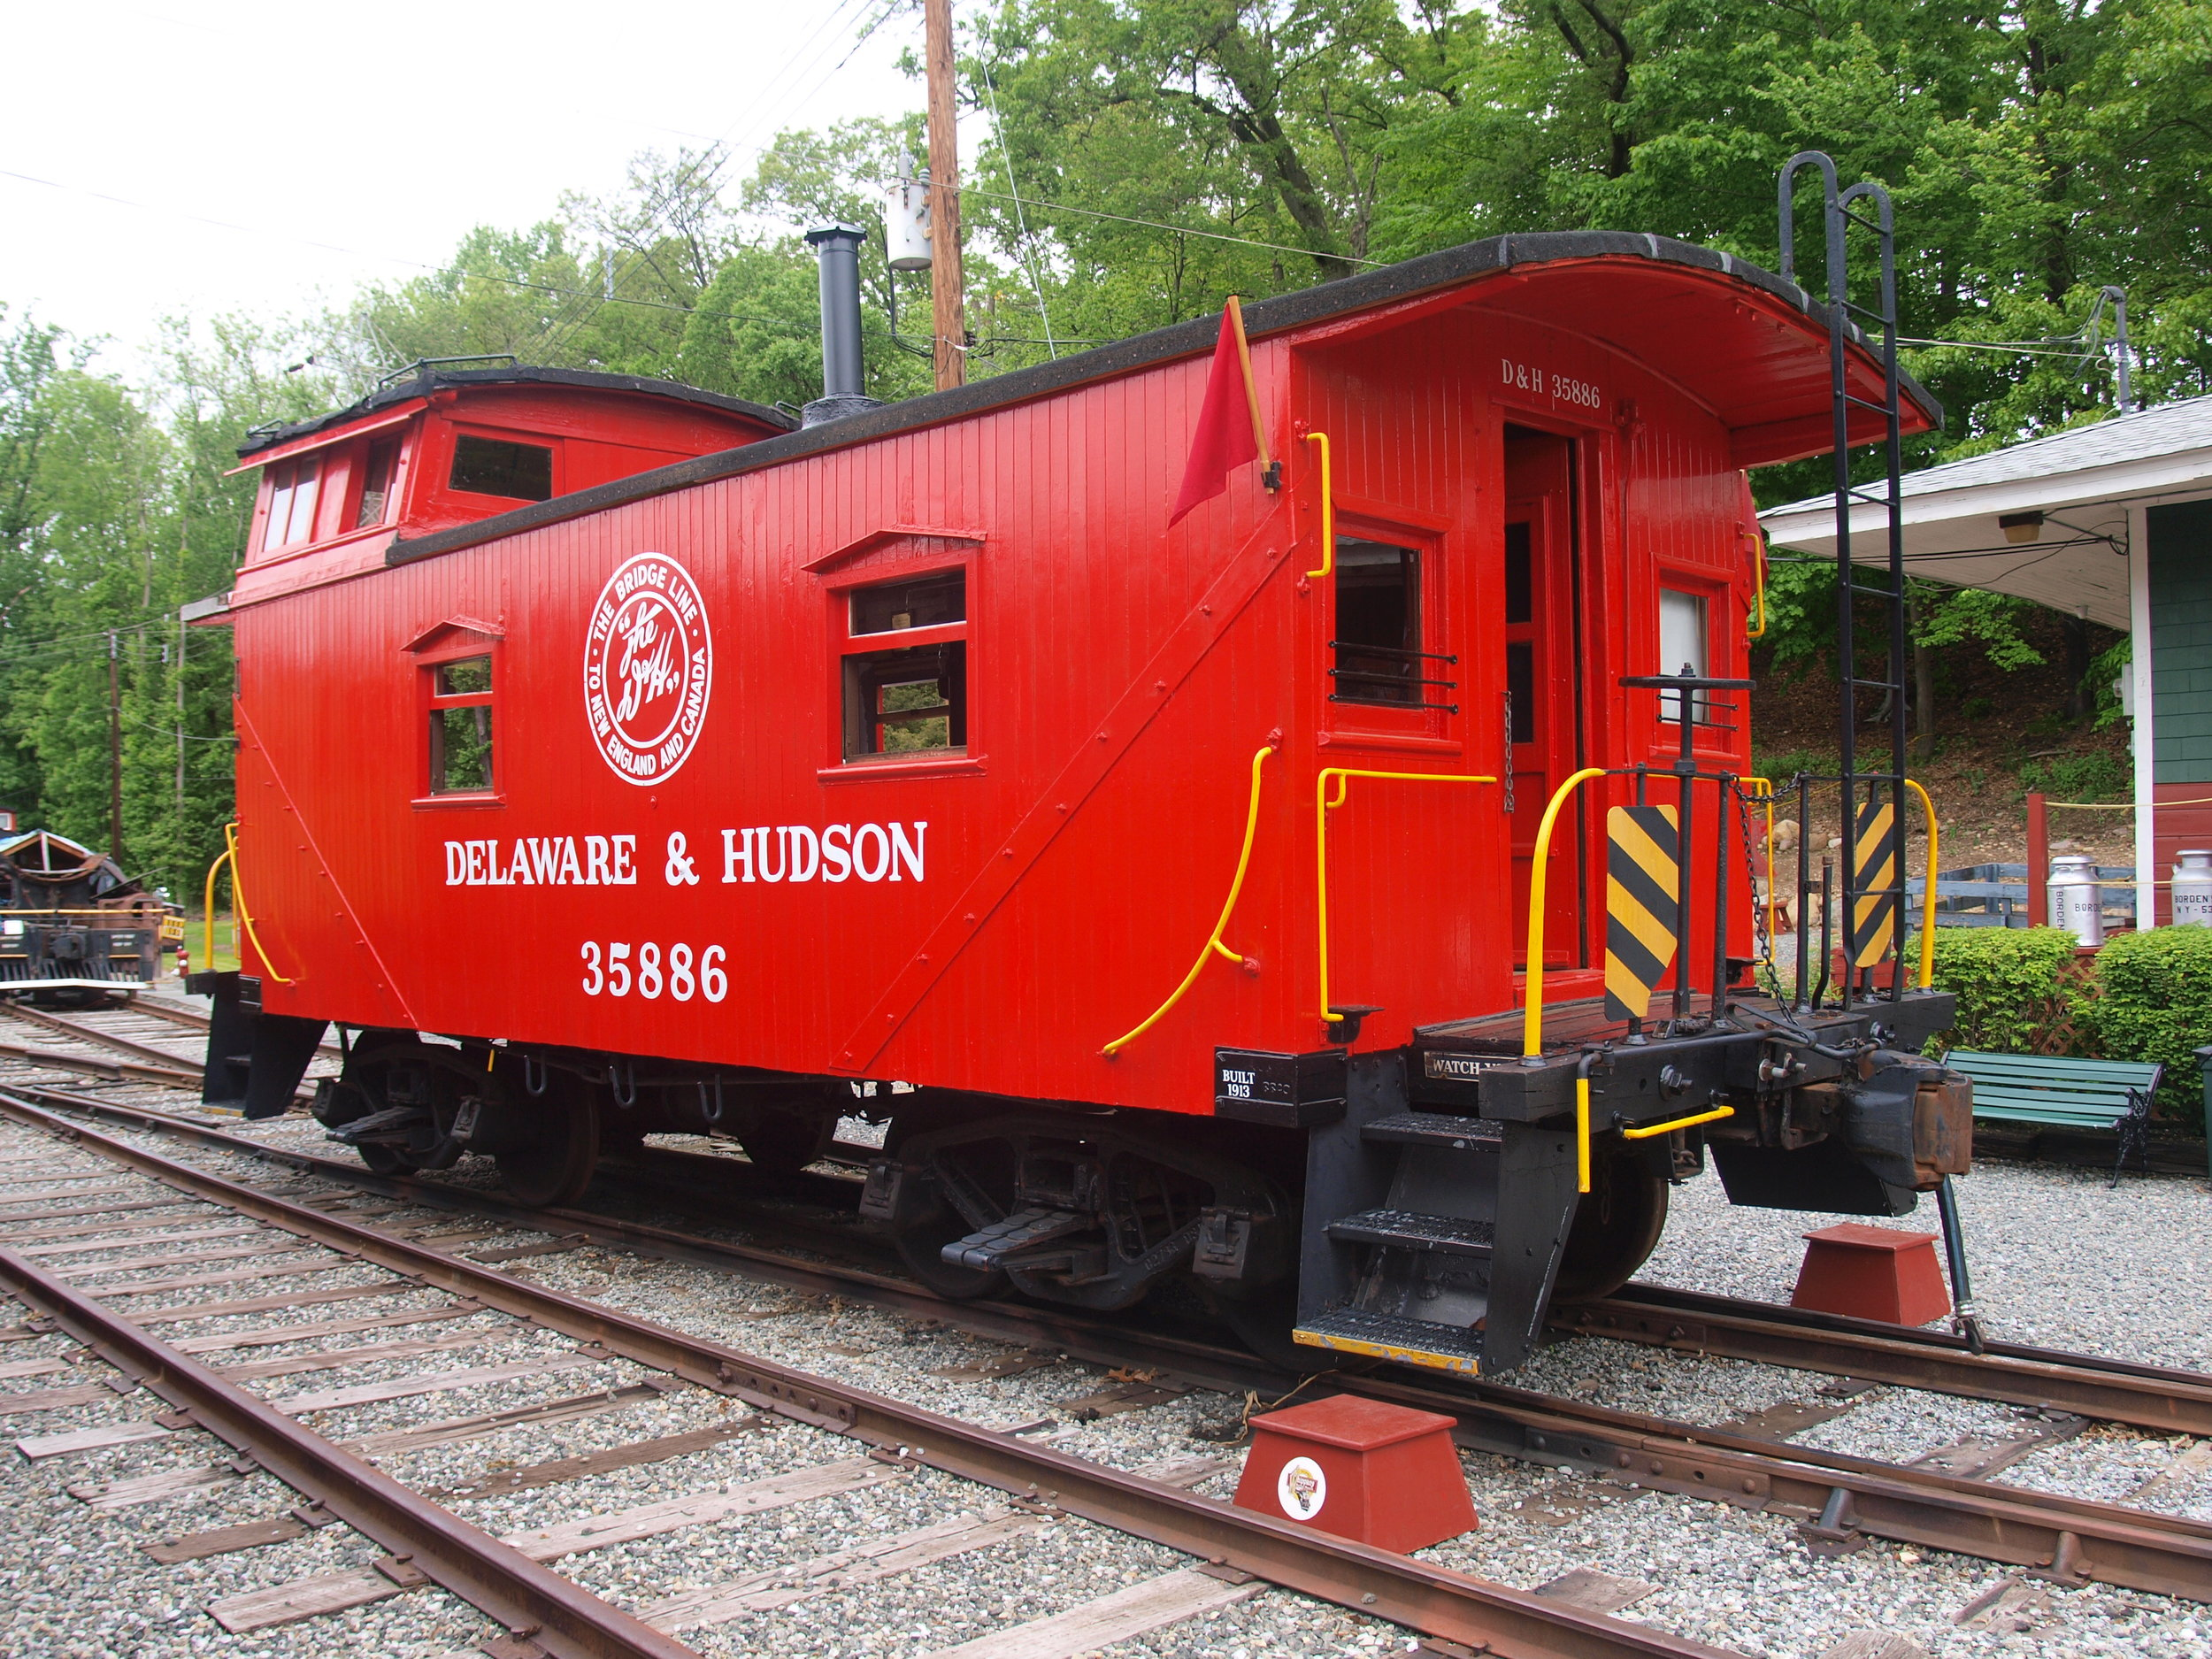 D&H #35886, built in 1913, is now owned by Steve Hepler, the President of the Whippany Railway Museum in Whippany, NJ. It is pictured on the museum grounds on May 22, 2016.  (Steve Hepler photo)